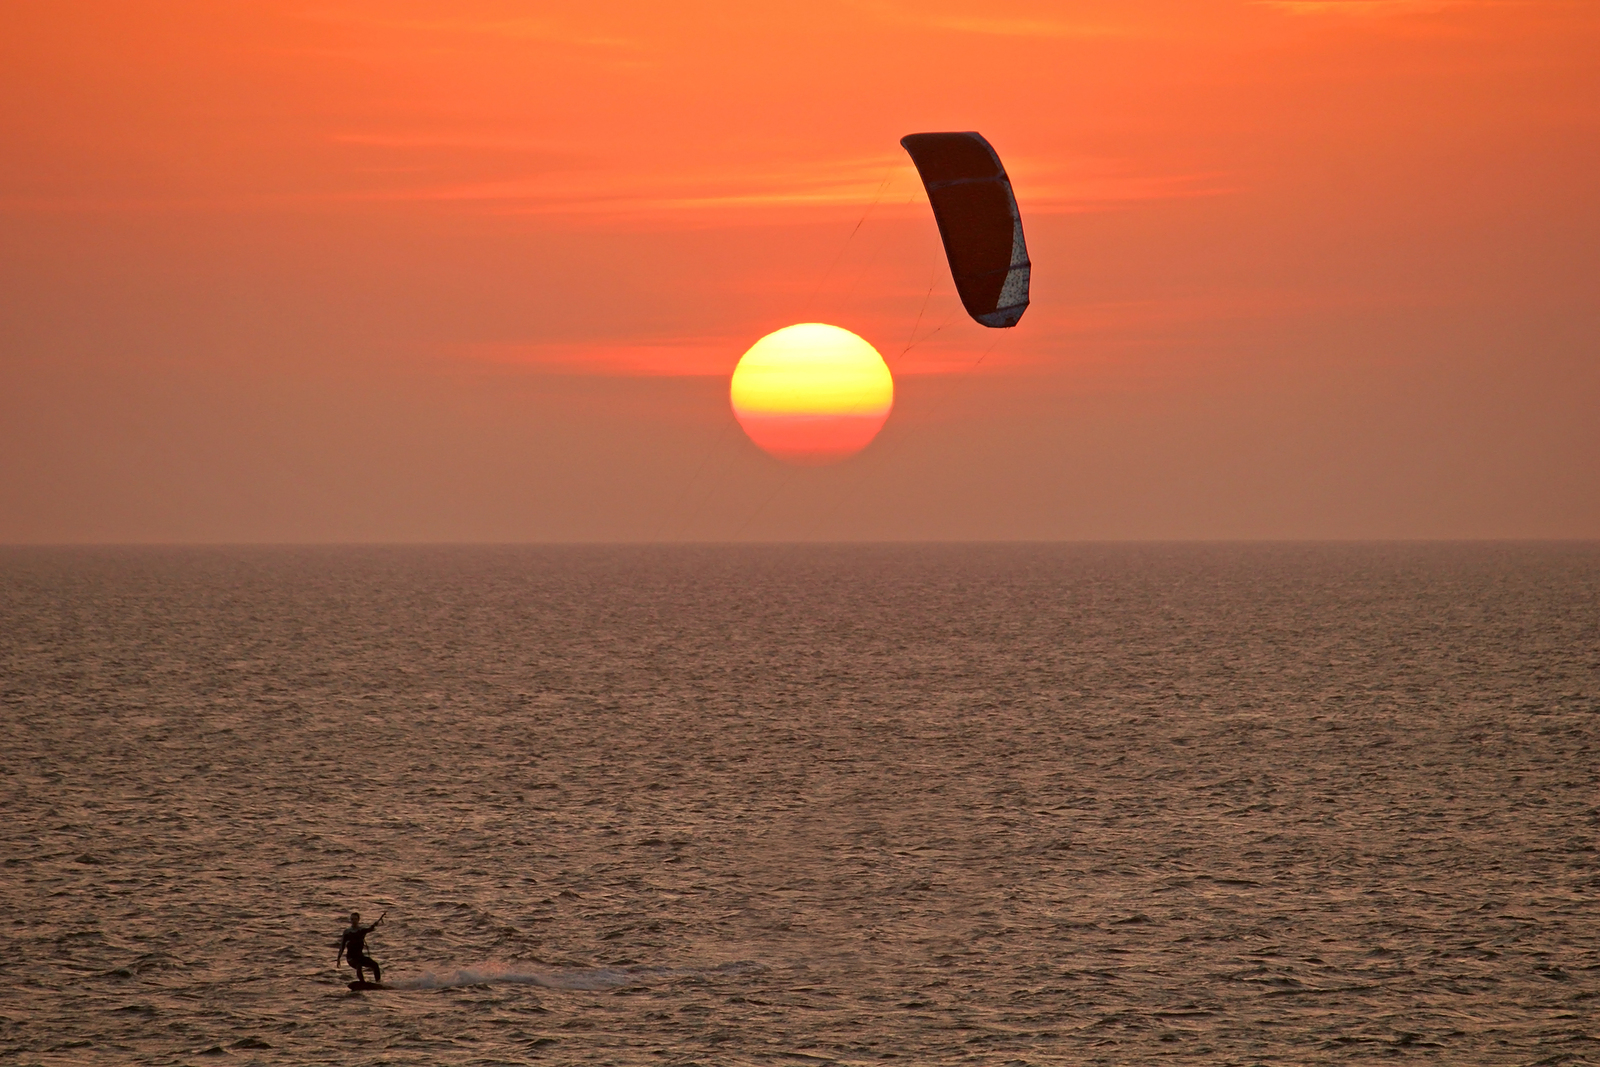 Kite Surfing on Hatteras Island